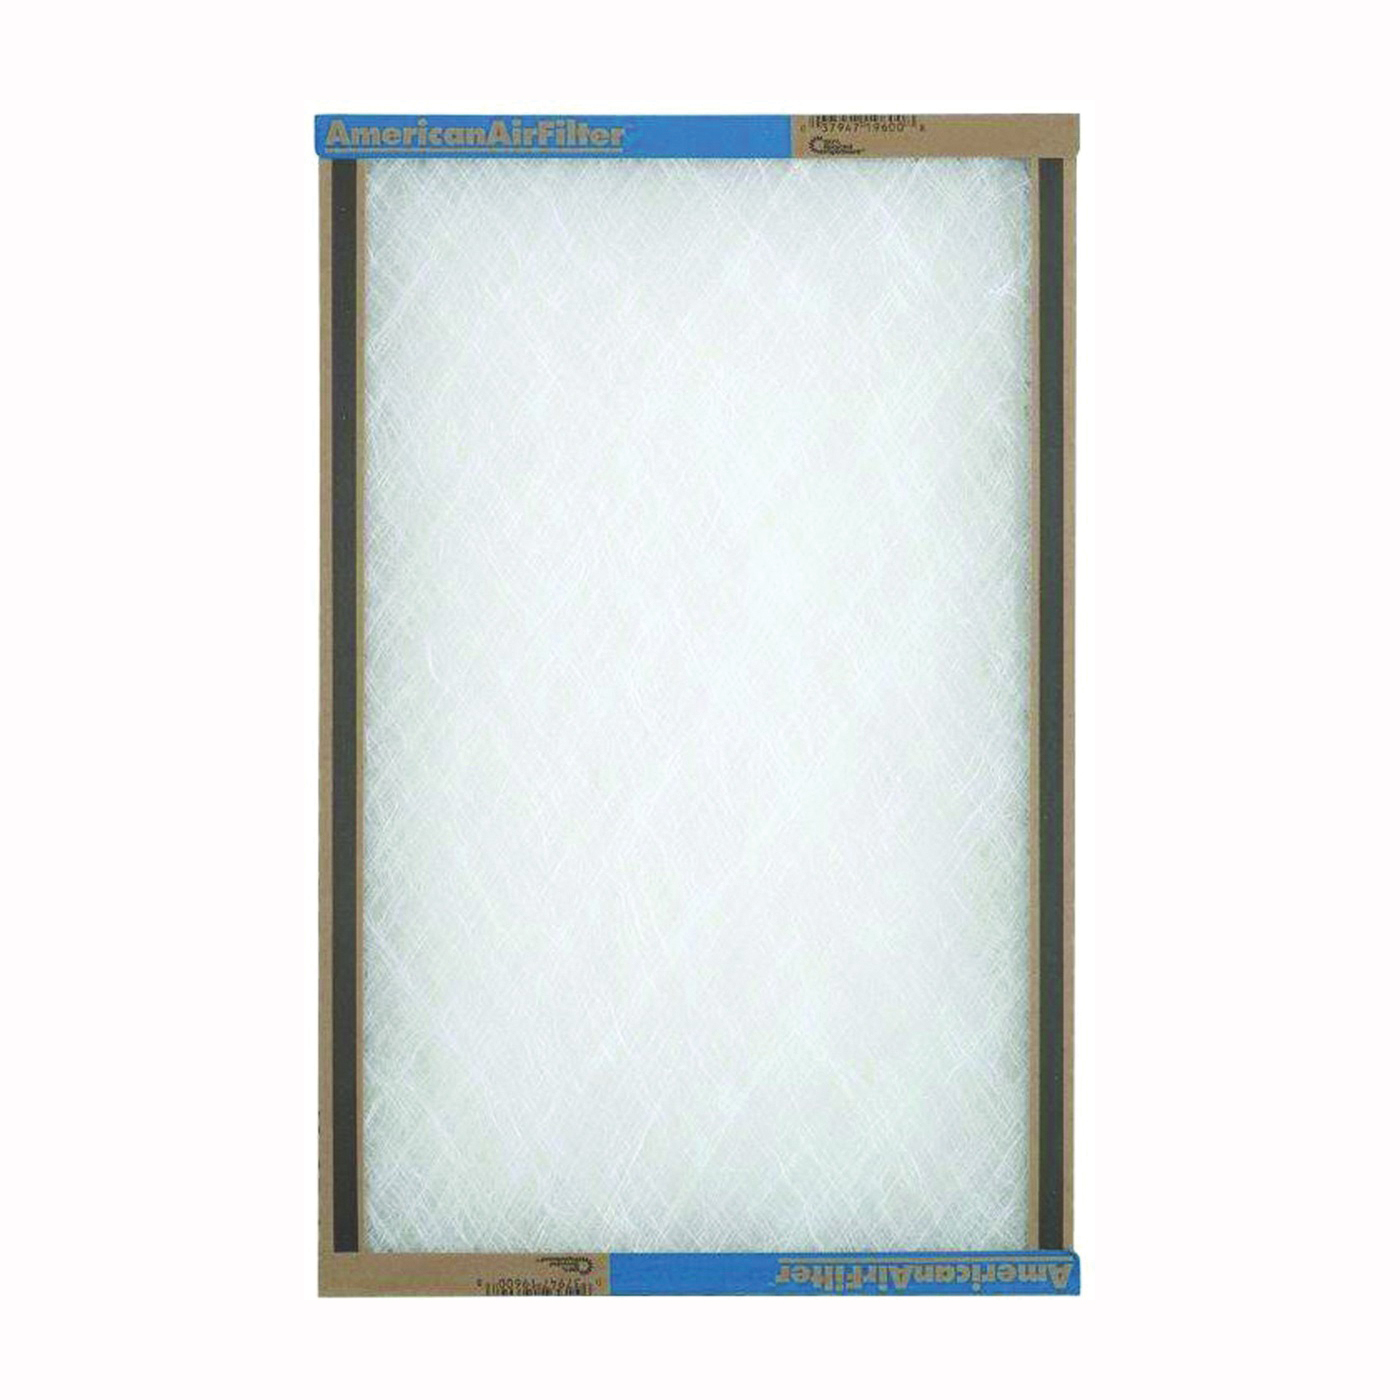 Picture of AAF 110201 Panel Filter, 20 in L, 10 in W, Chipboard Frame